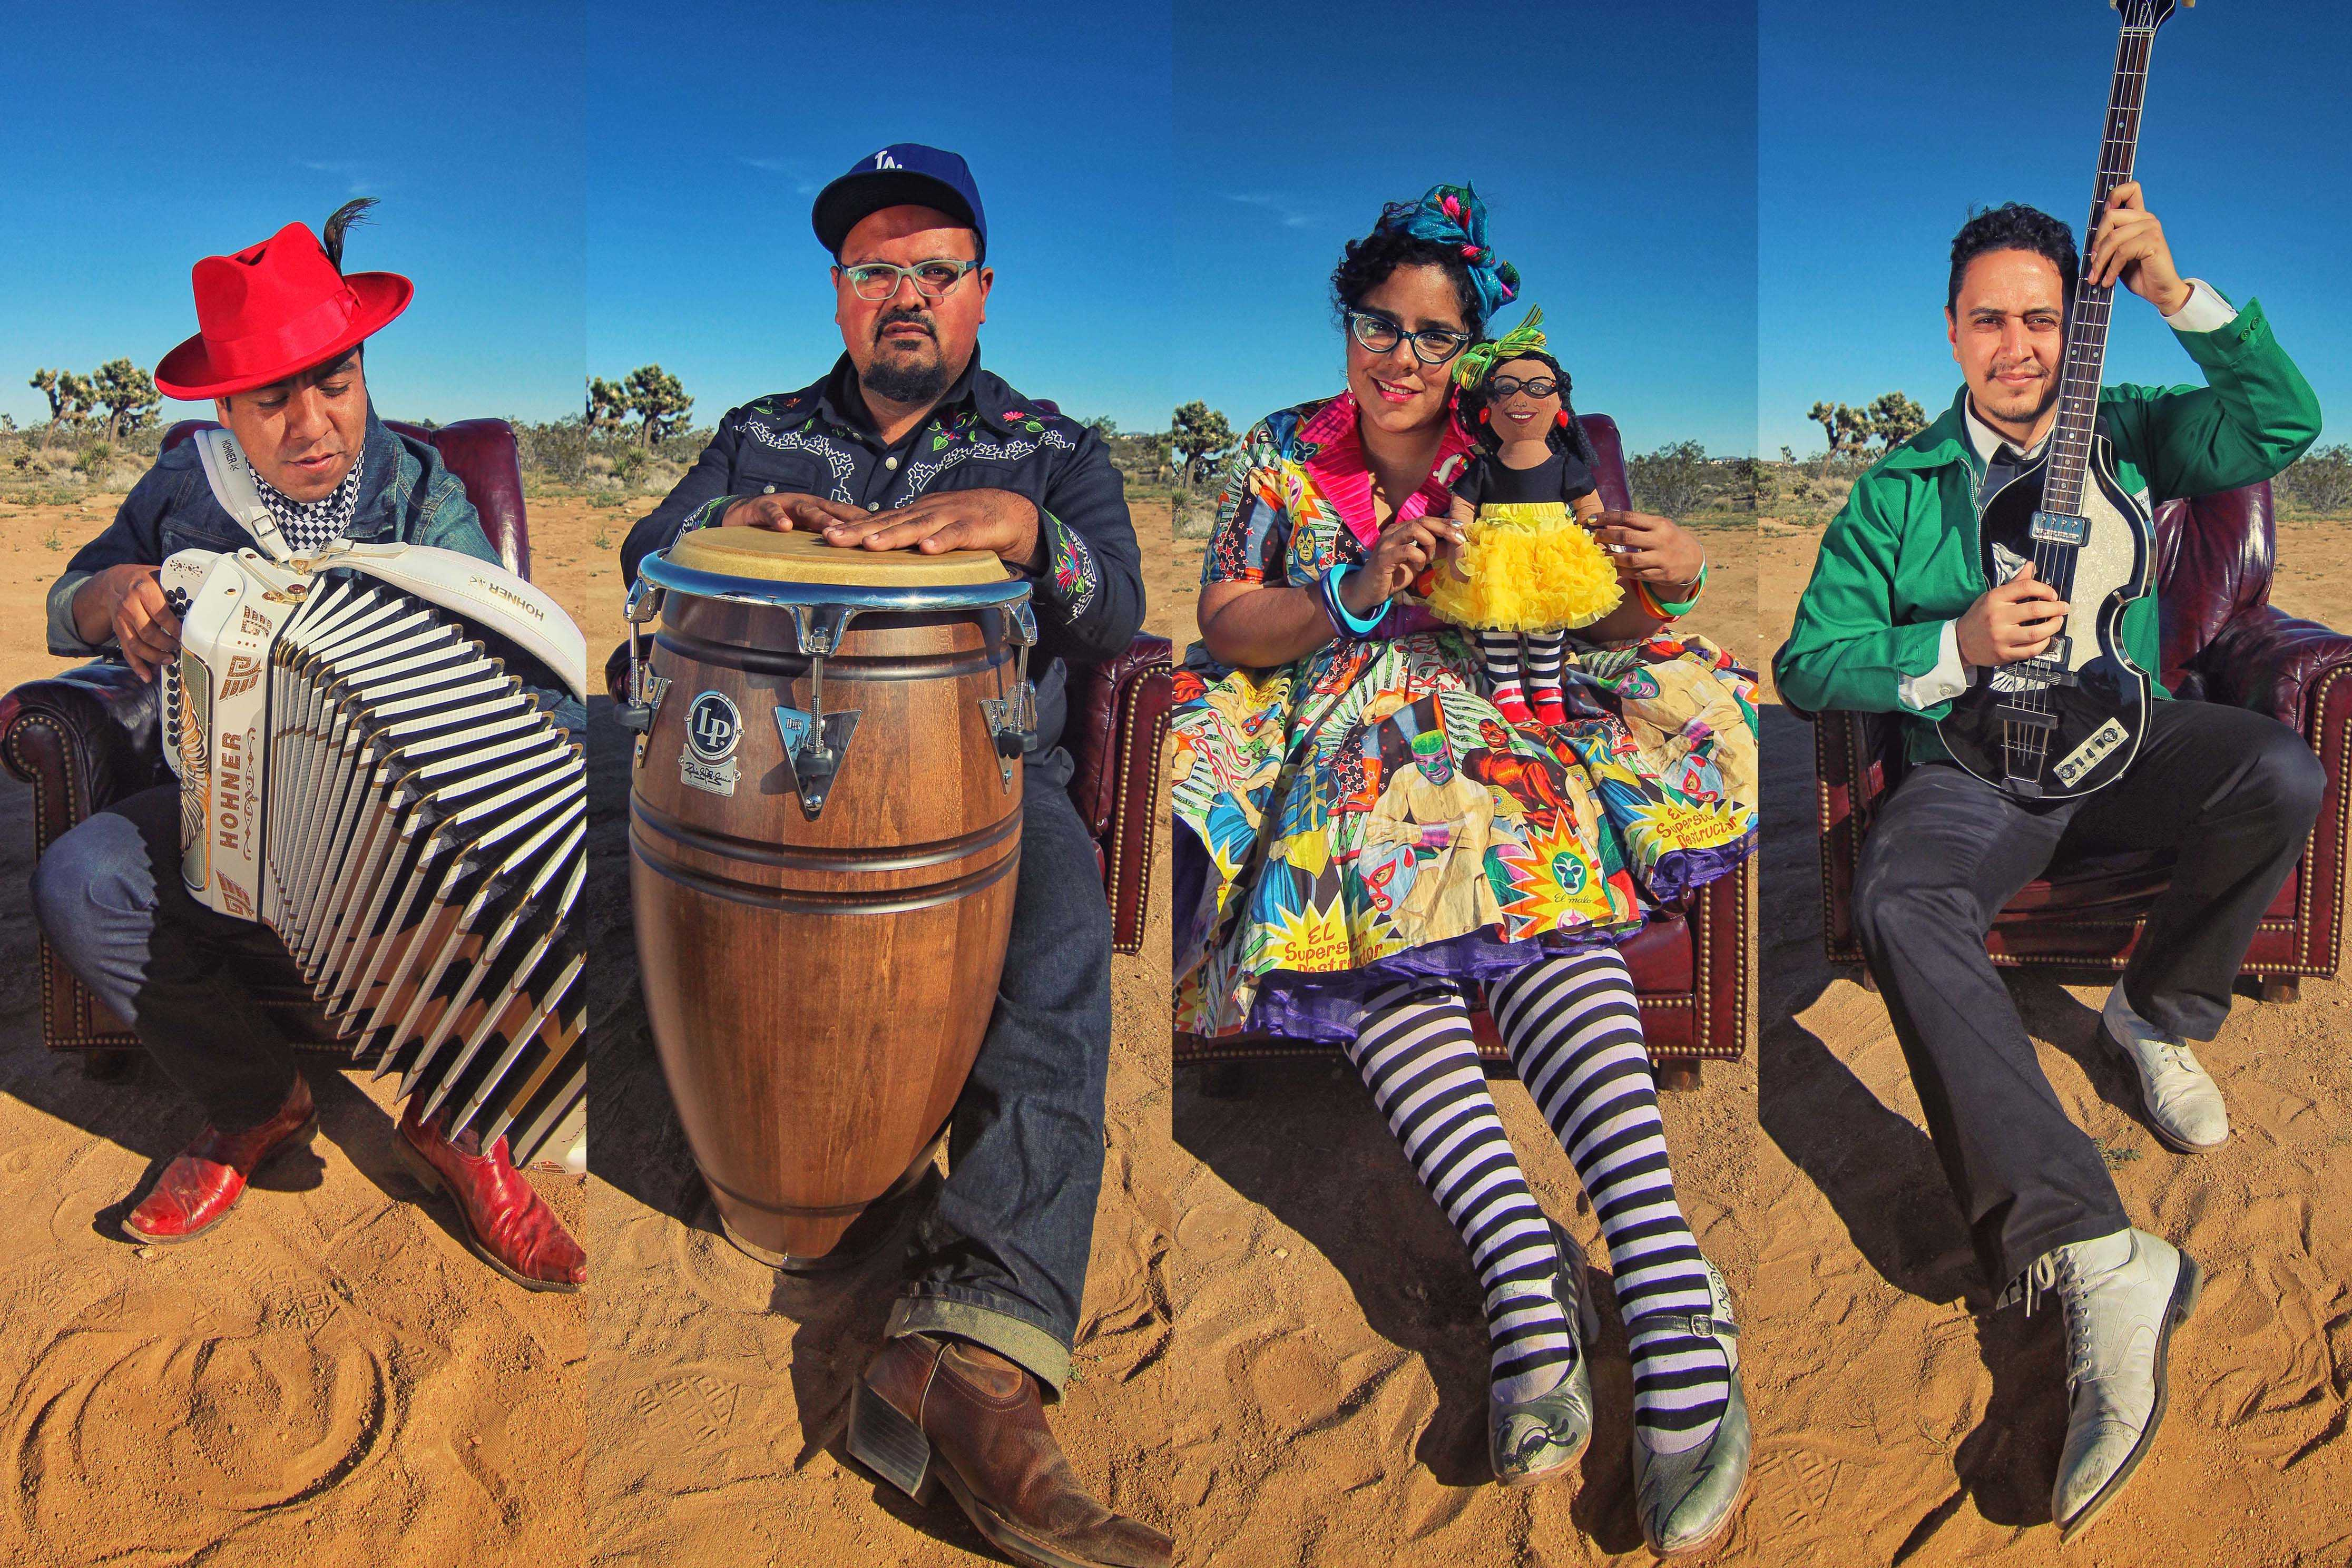 LSC band members. From left to right: Pepe, Miguel, Marisol, and Alex. (Courtesy of the VPAC)